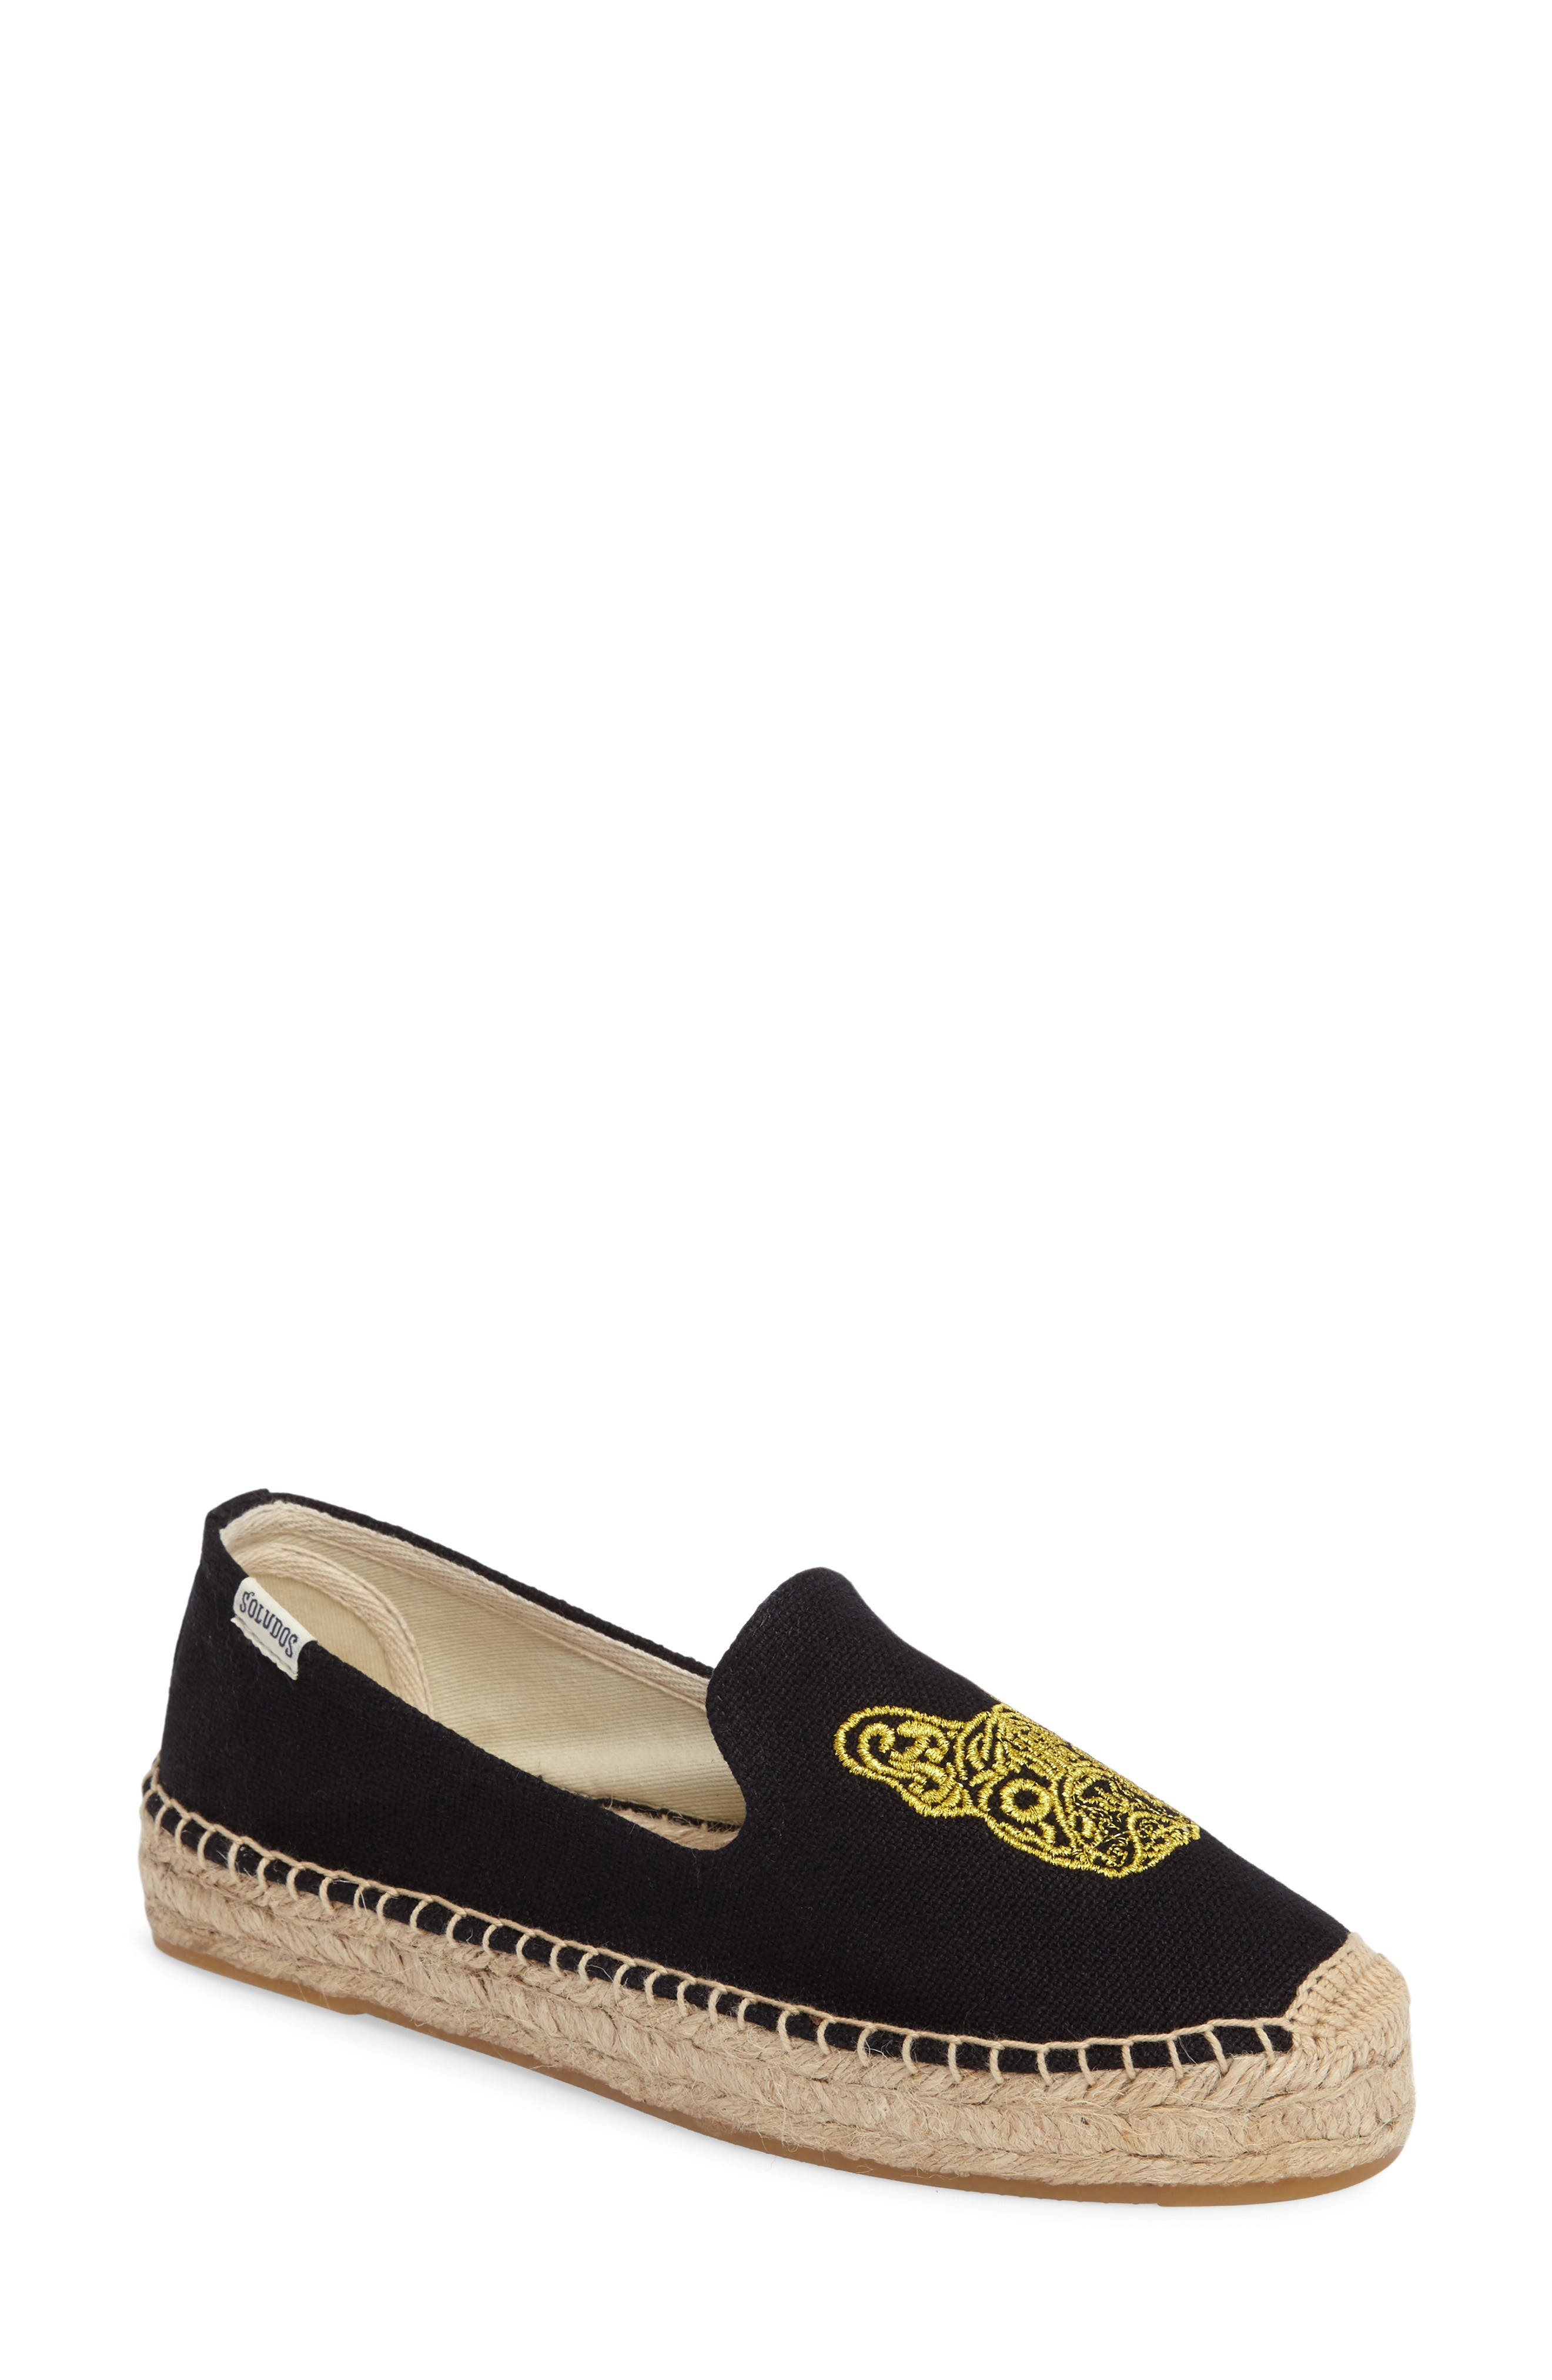 Frenchie Espadrille Loafer,                             Main thumbnail 1, color,                             006